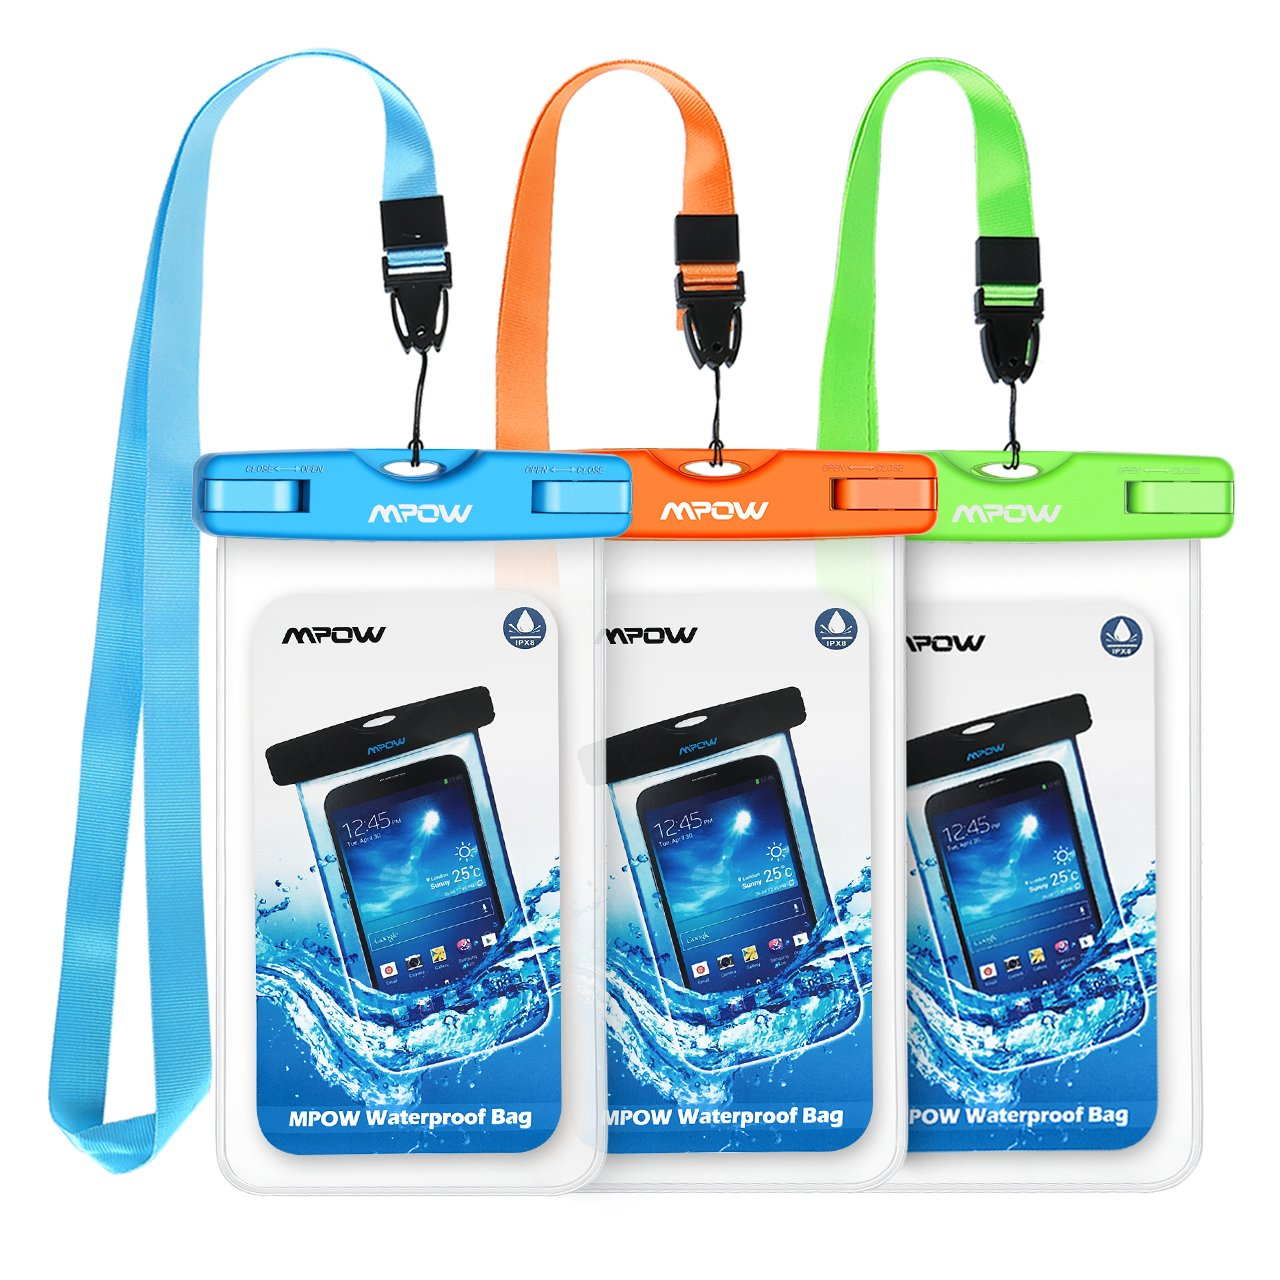 Mpow 024 Waterproof Case, Universal IPX8 Waterproof Phone Pouch Underwater Protective Dry Bag Compatible iPhone Xs Max/XS/XR/X/8/8P, Galaxy S10/S9, Google Pixel/HTC up to 6.5'' (Blue Orange Green) by Mpow